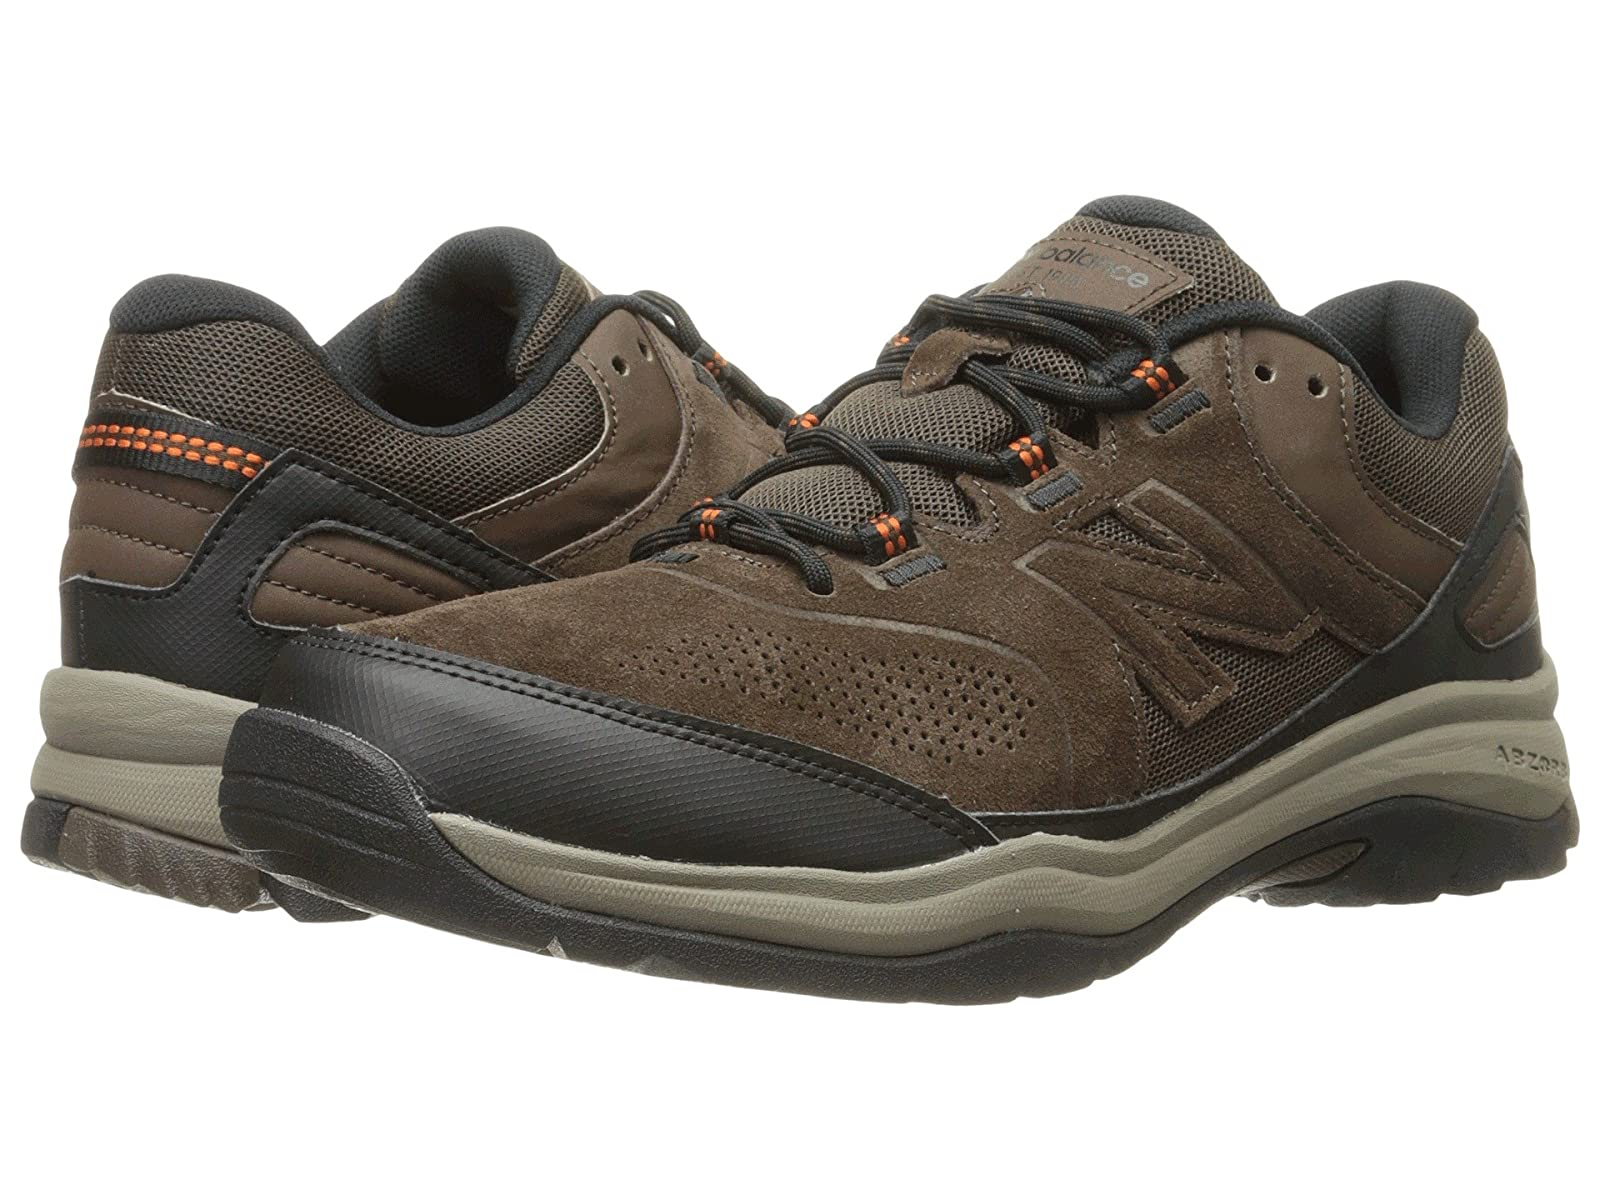 New Balance MW769v1Cheap and distinctive eye-catching shoes